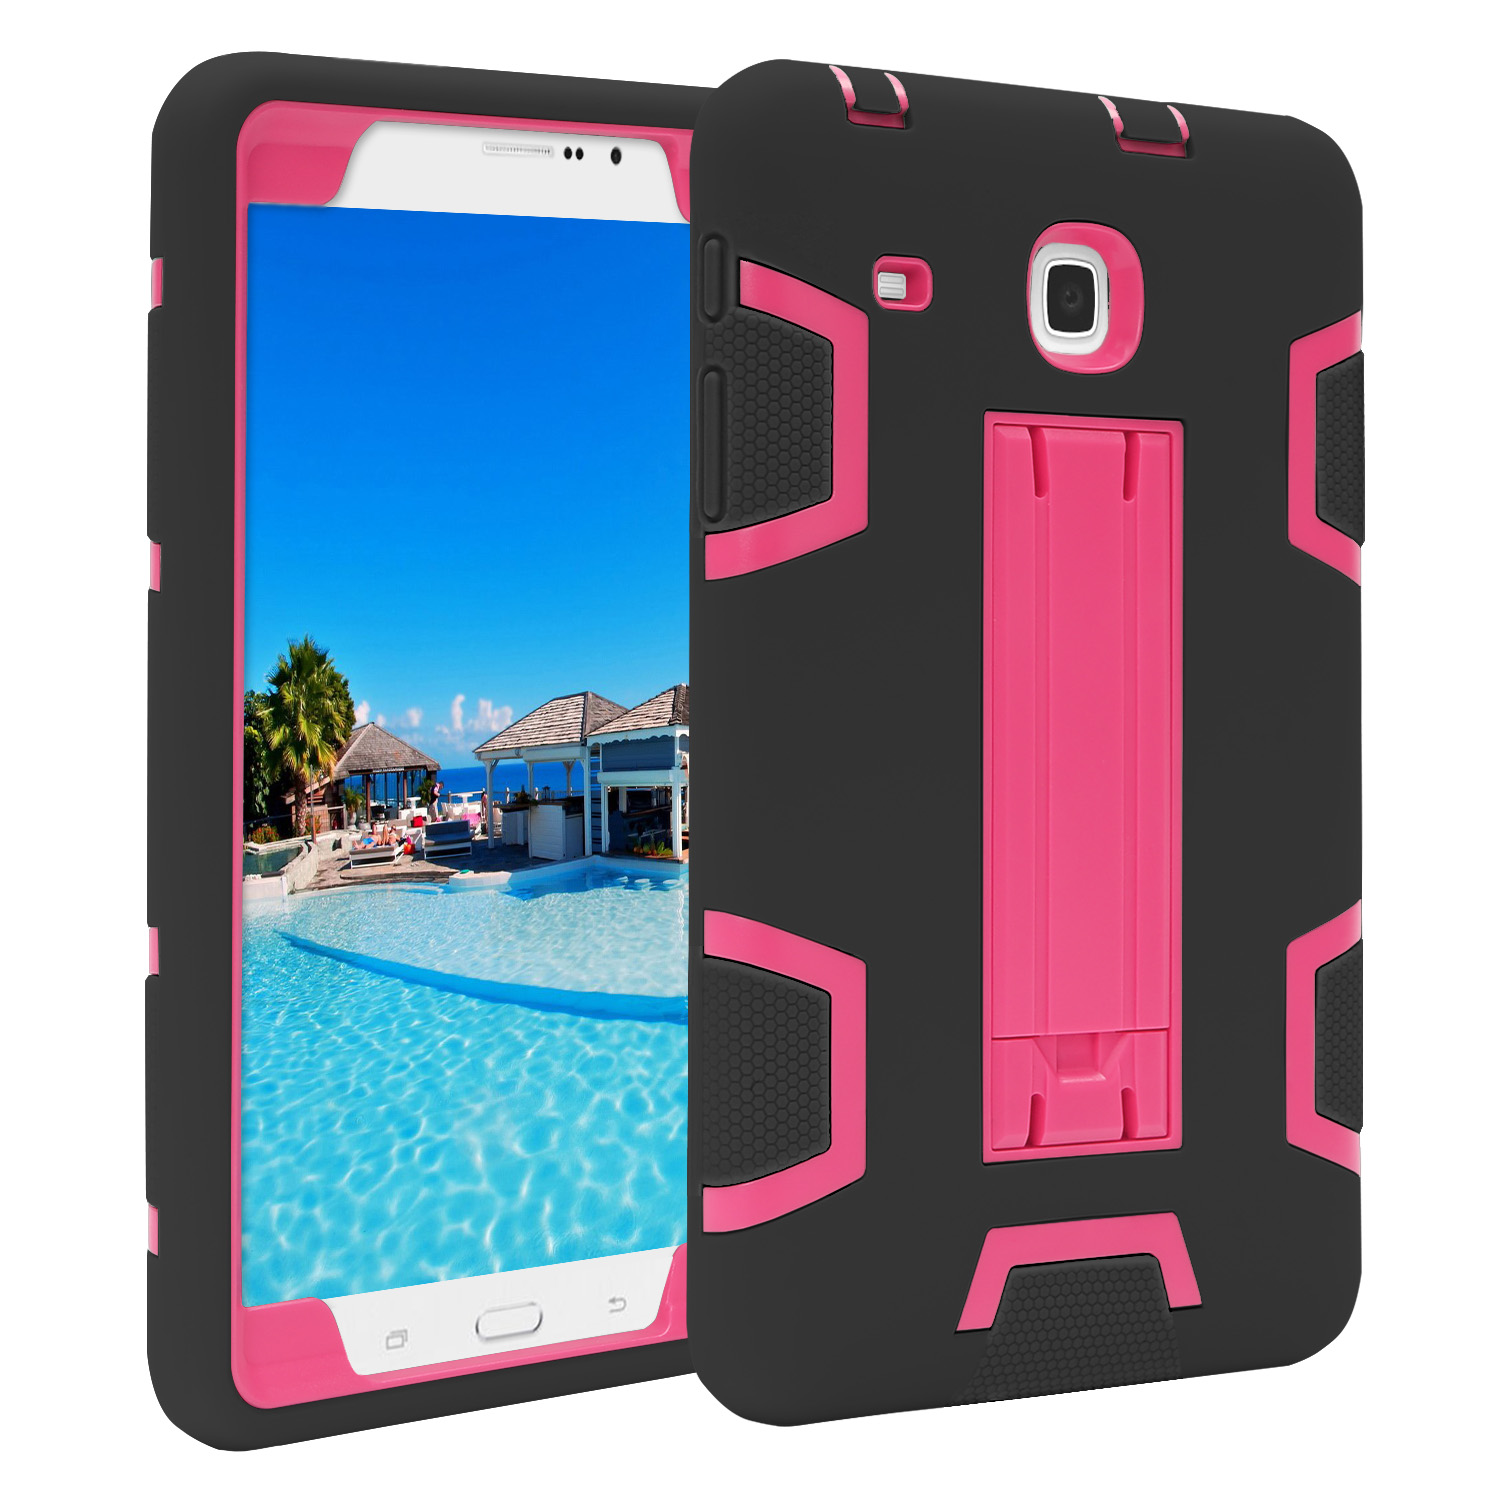 TKOOFN Samsung Shockproof Heavy Duty Kids Rugged Stand Case Cover for Samsung Galaxy Tab E 8""